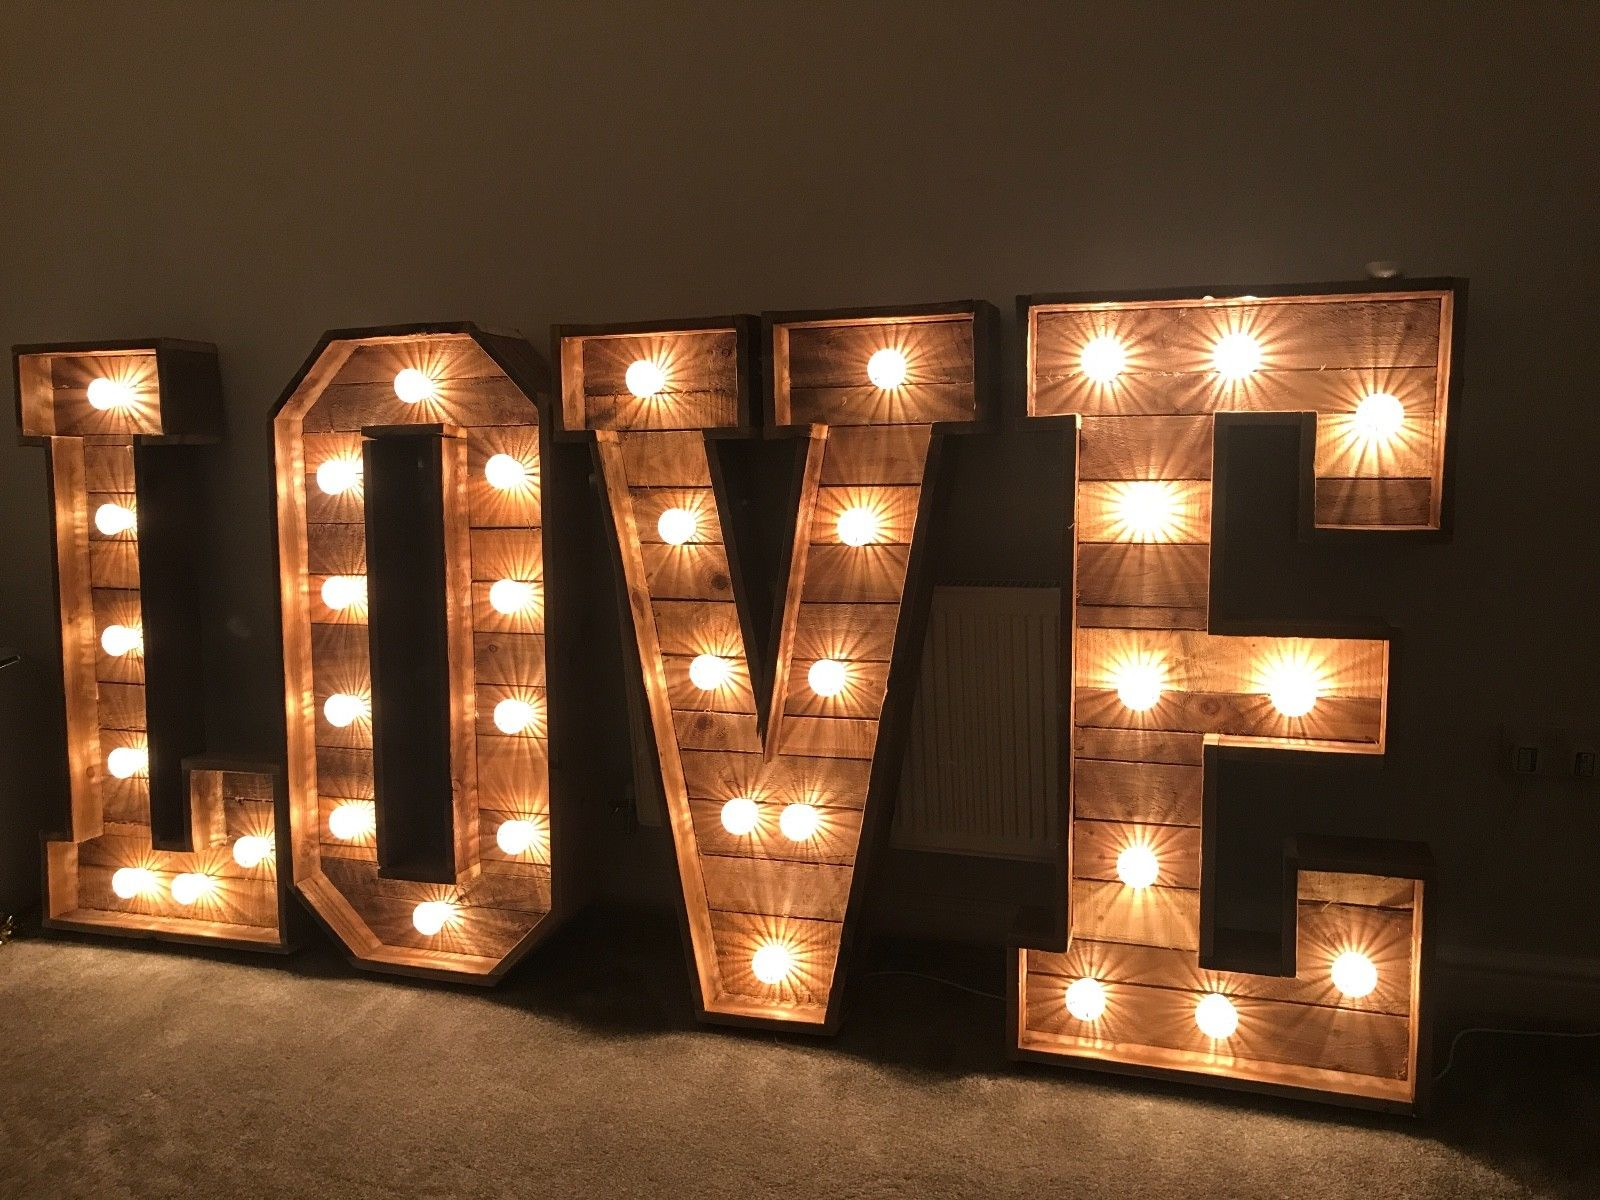 GIANT LOVE LETTERS Marlow